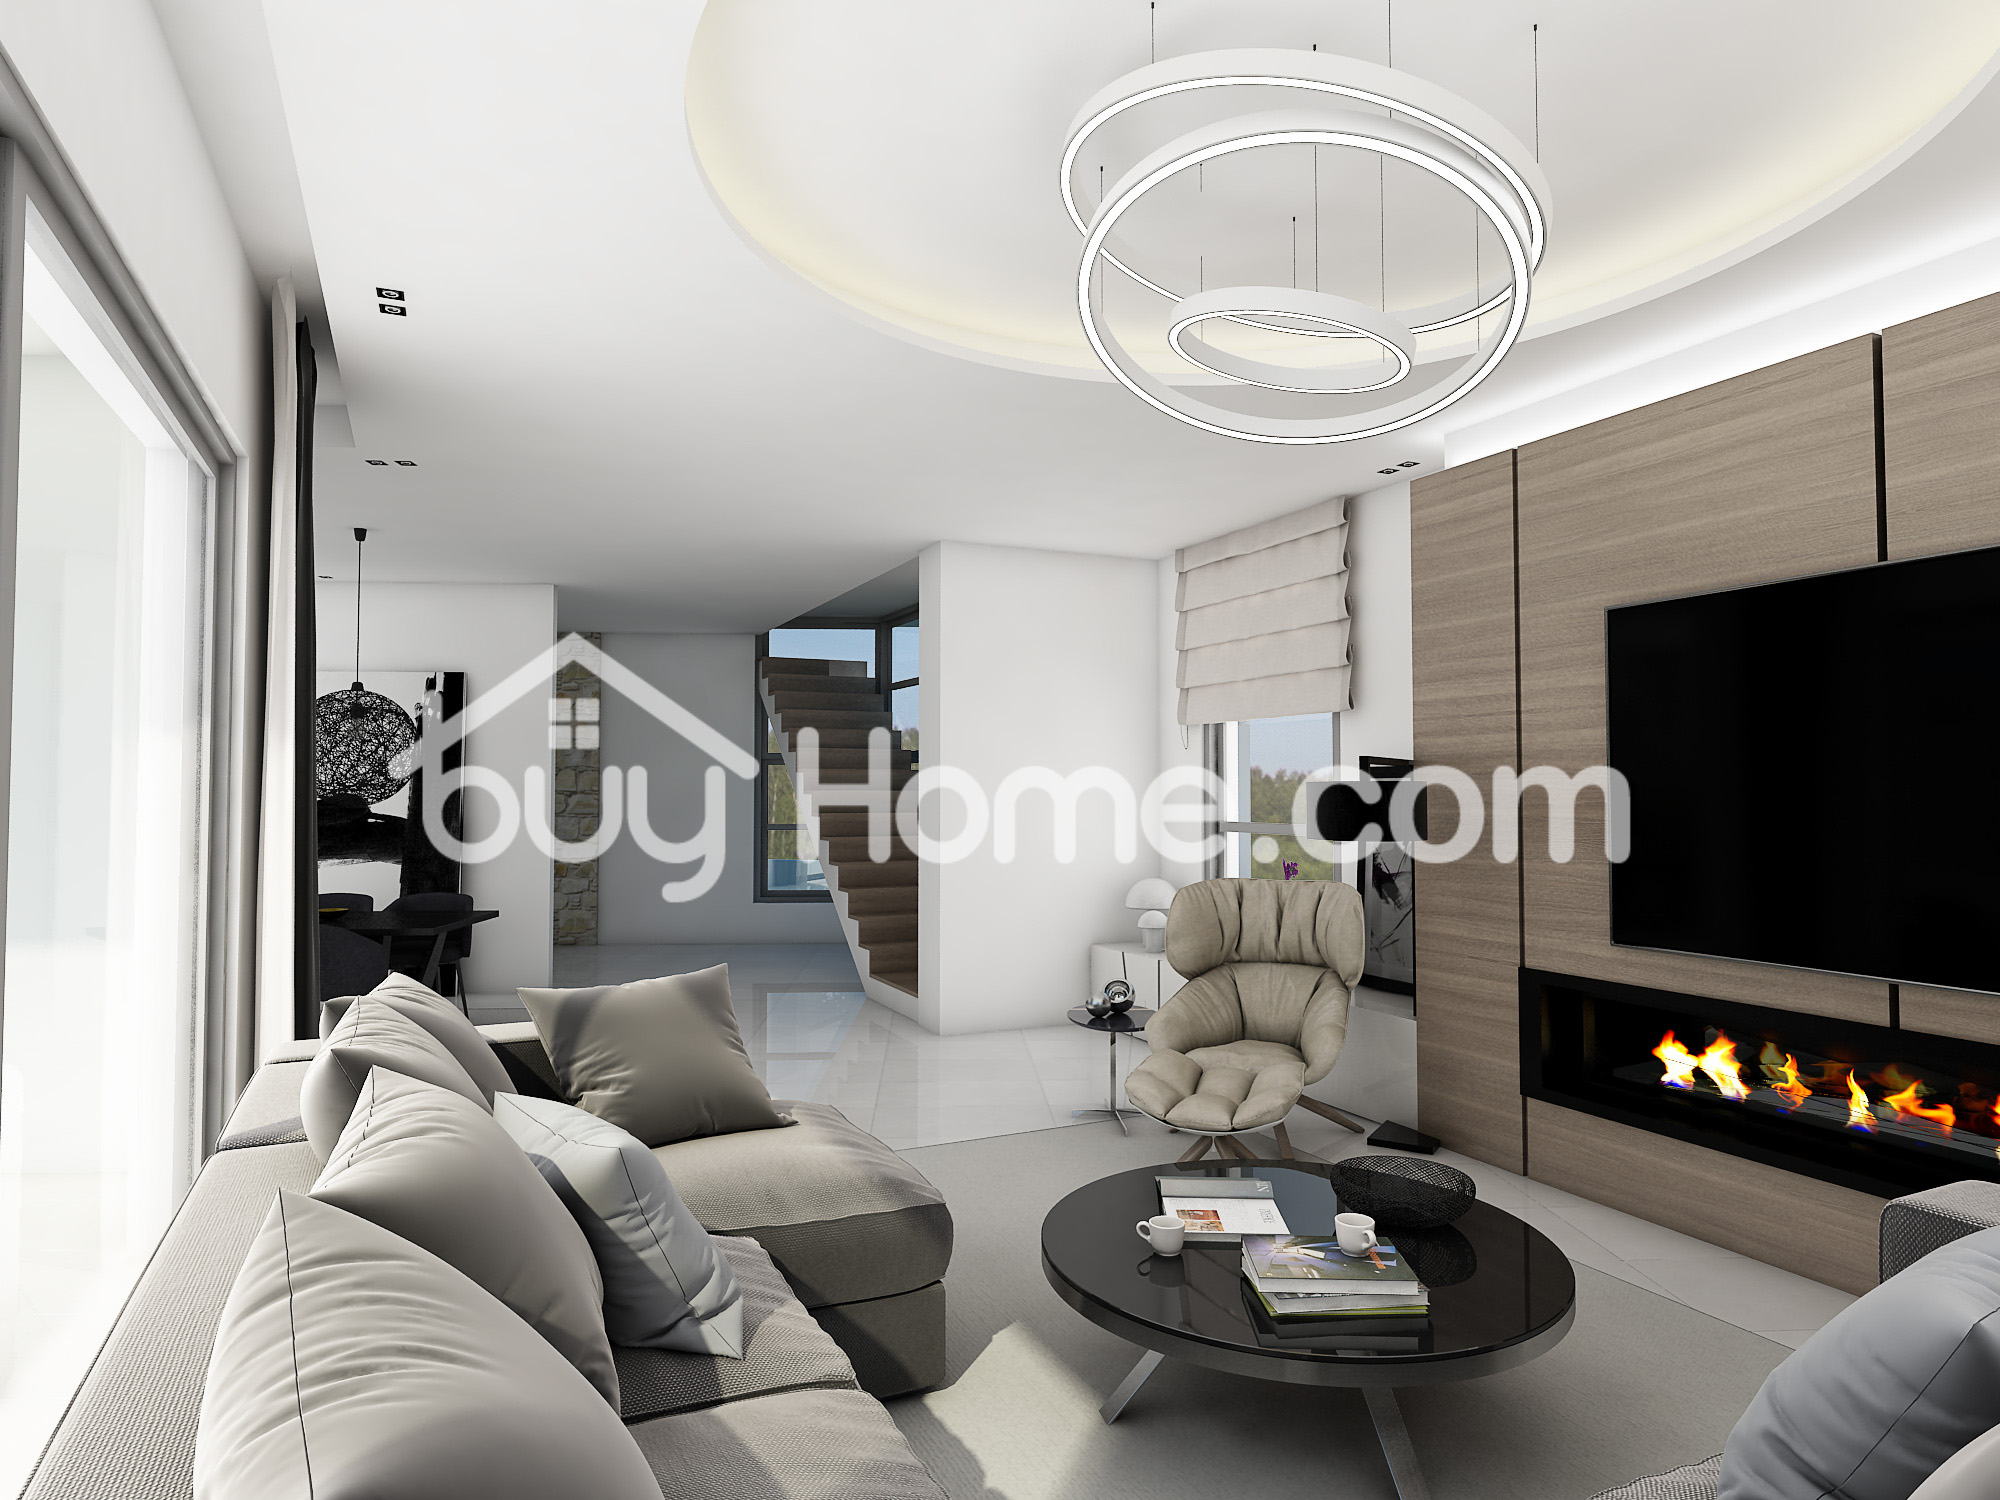 4 BDR house | BuyHome